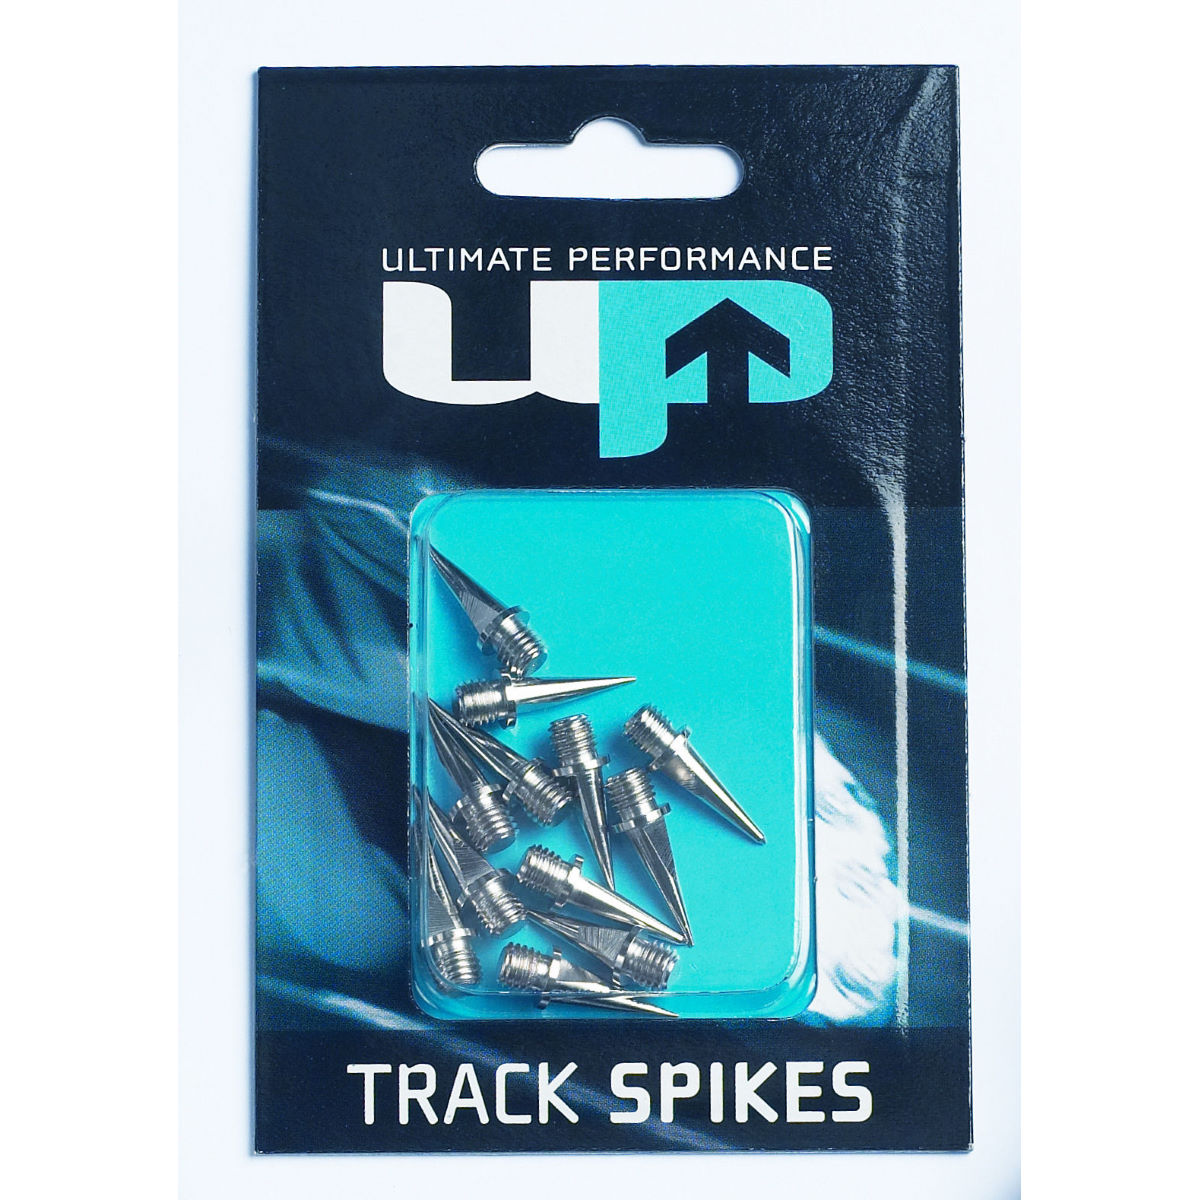 Ultimate Performance Ultimate Performance Track Spikes   Shoe Spares